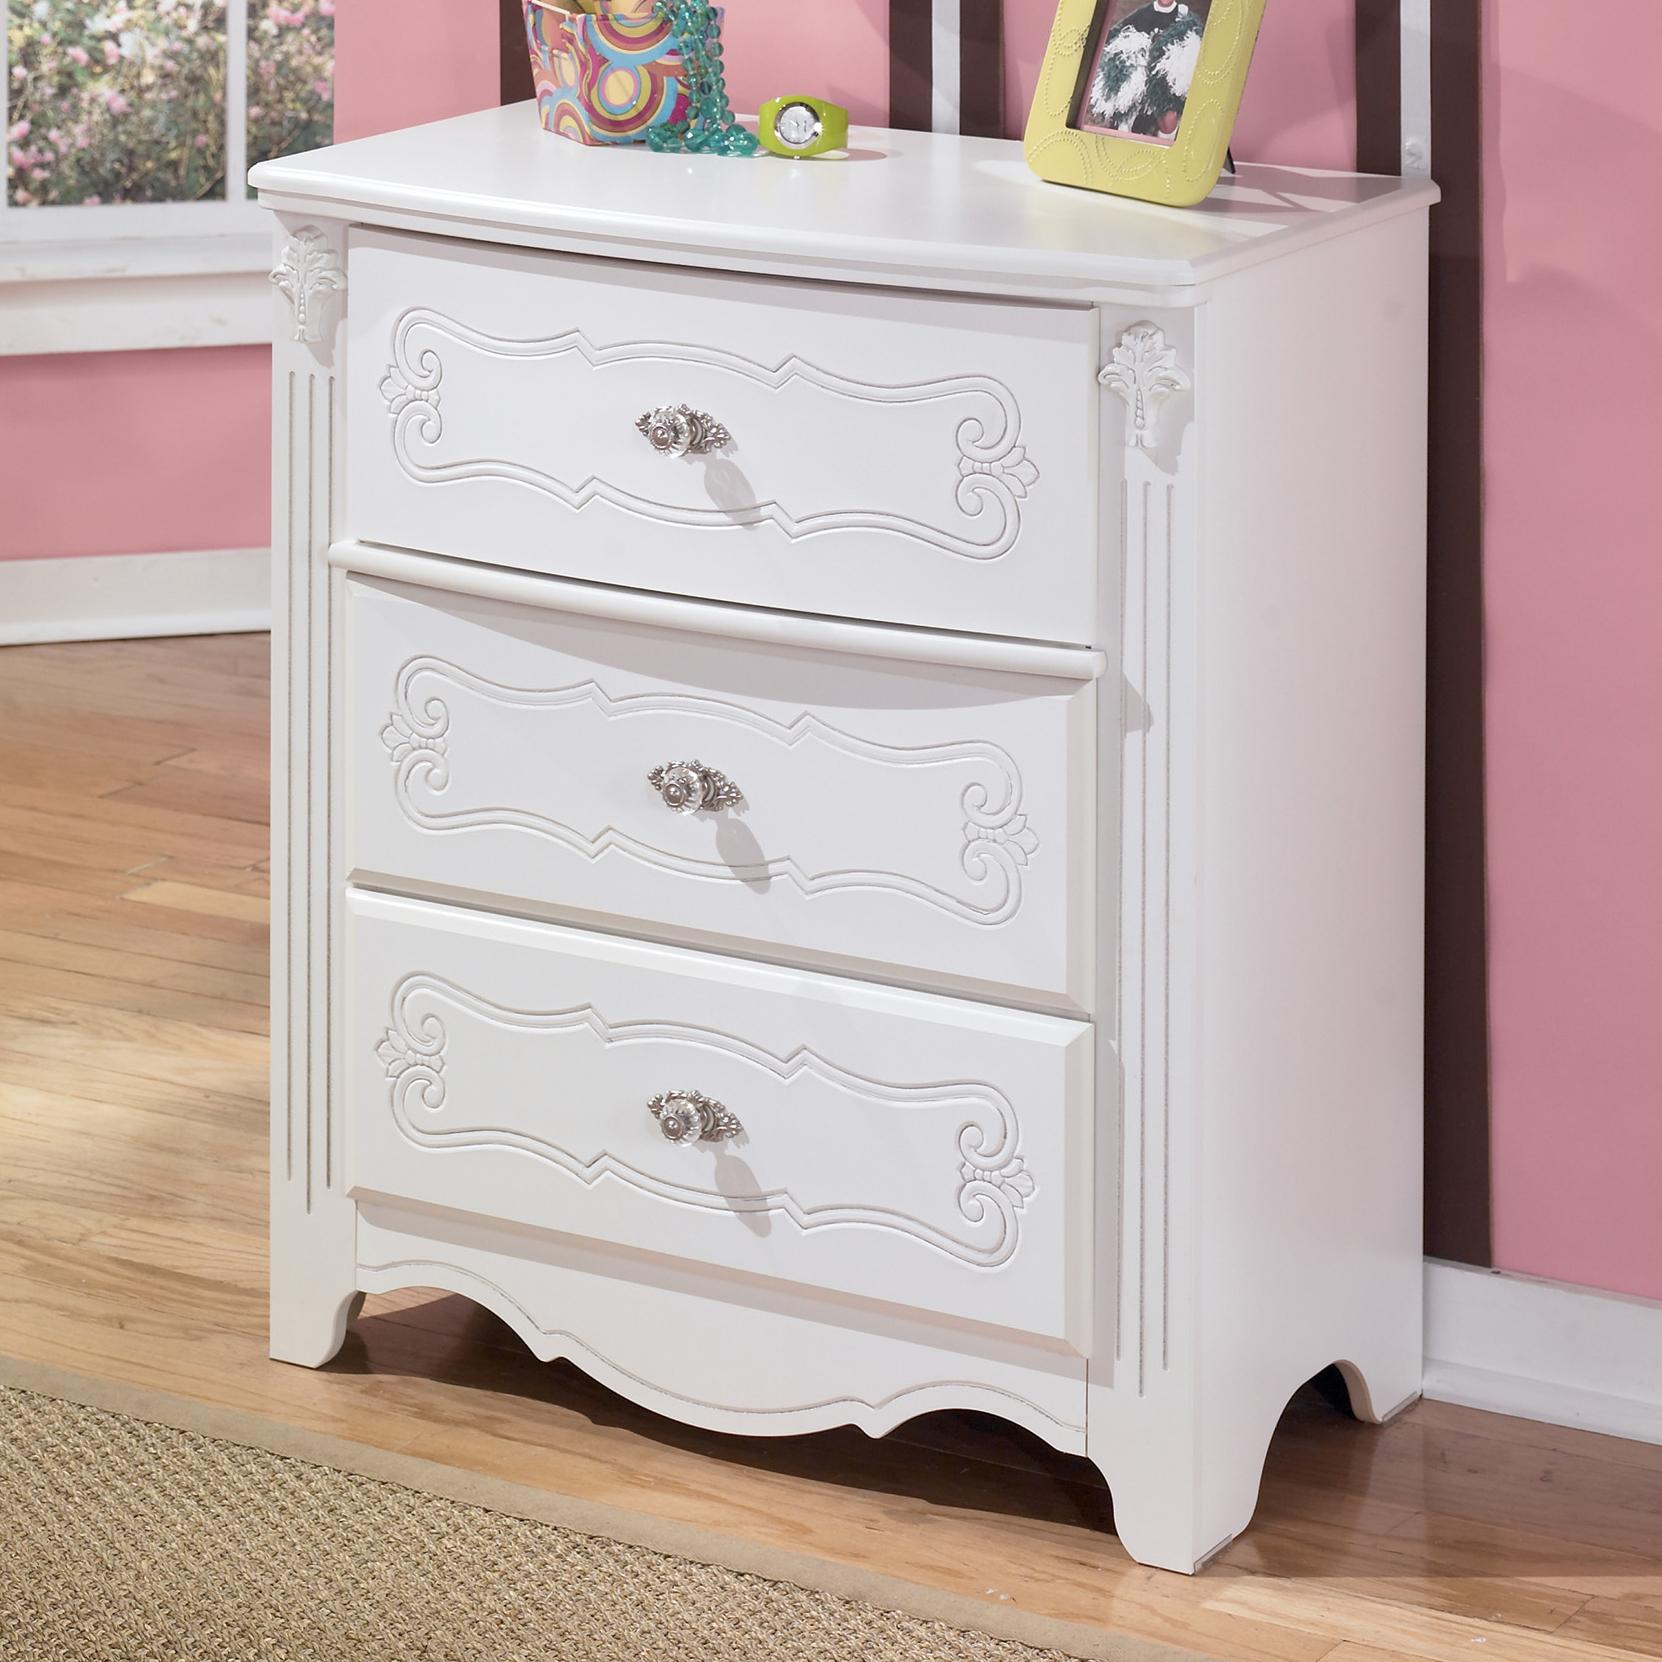 Signature Design by Ashley Exquisite 3-Drawer Chest - Item Number: B188-43